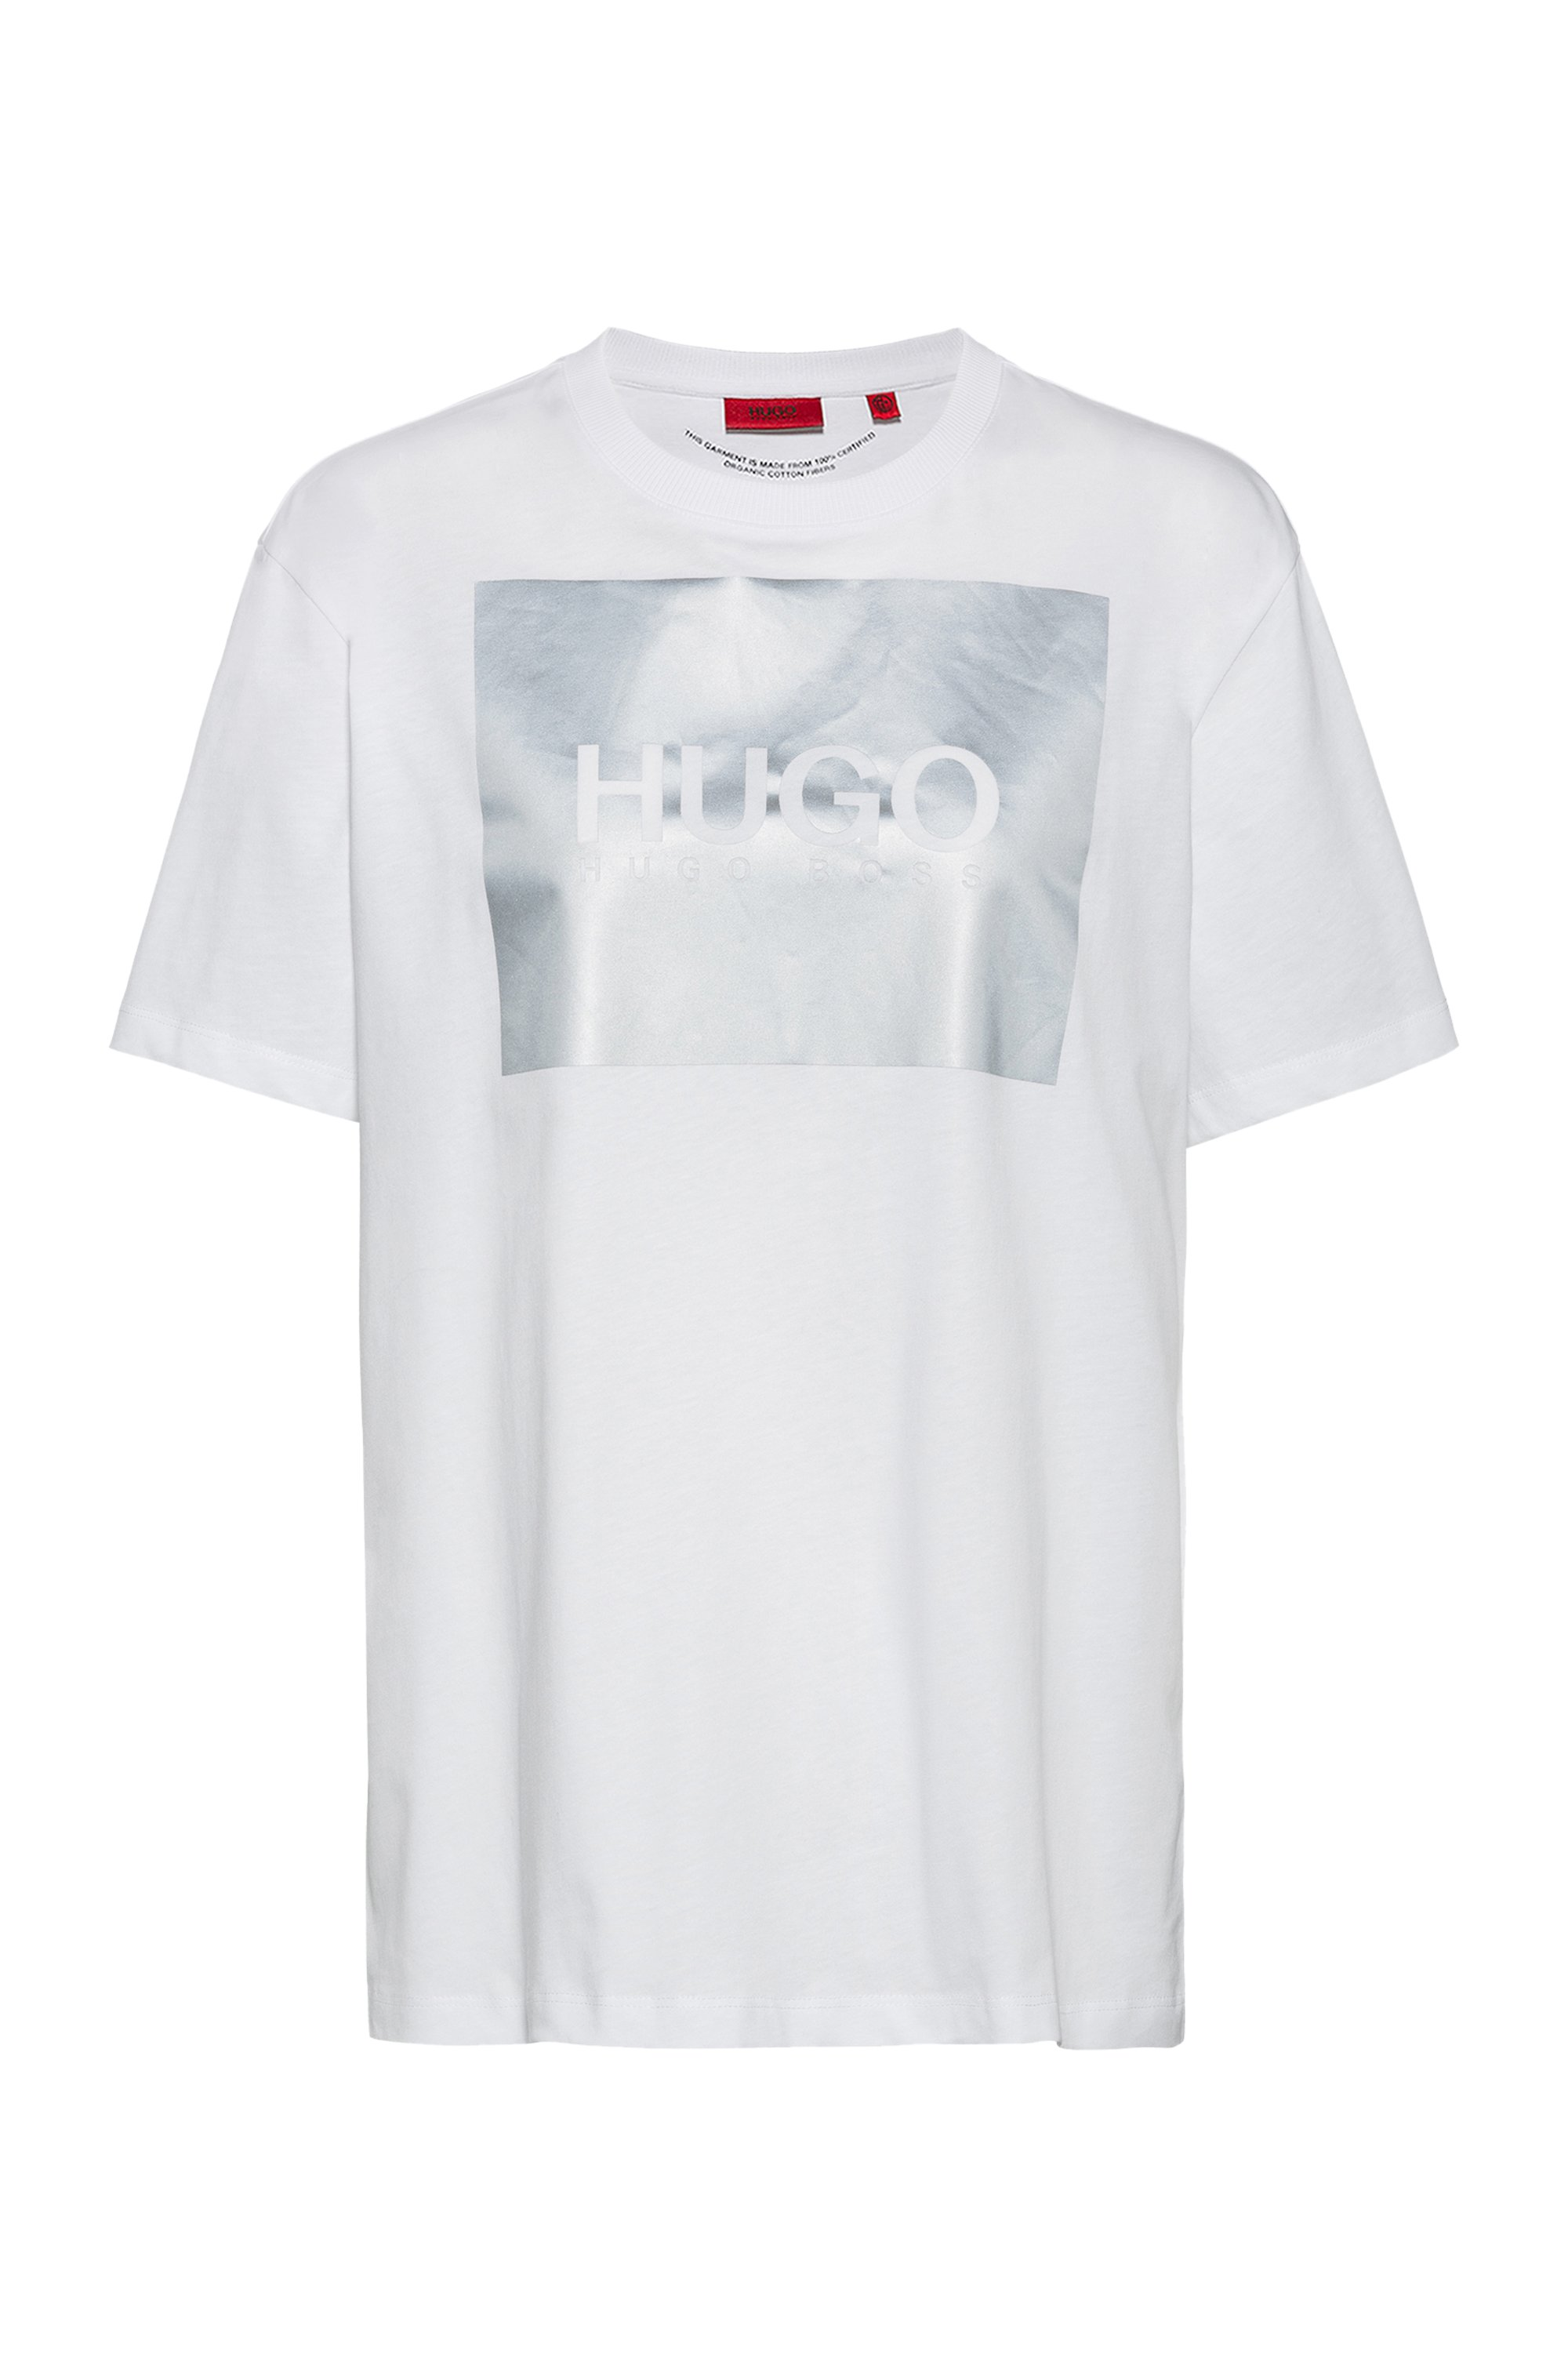 Relaxed-fit T-shirt in organic cotton with reflective logo print, White